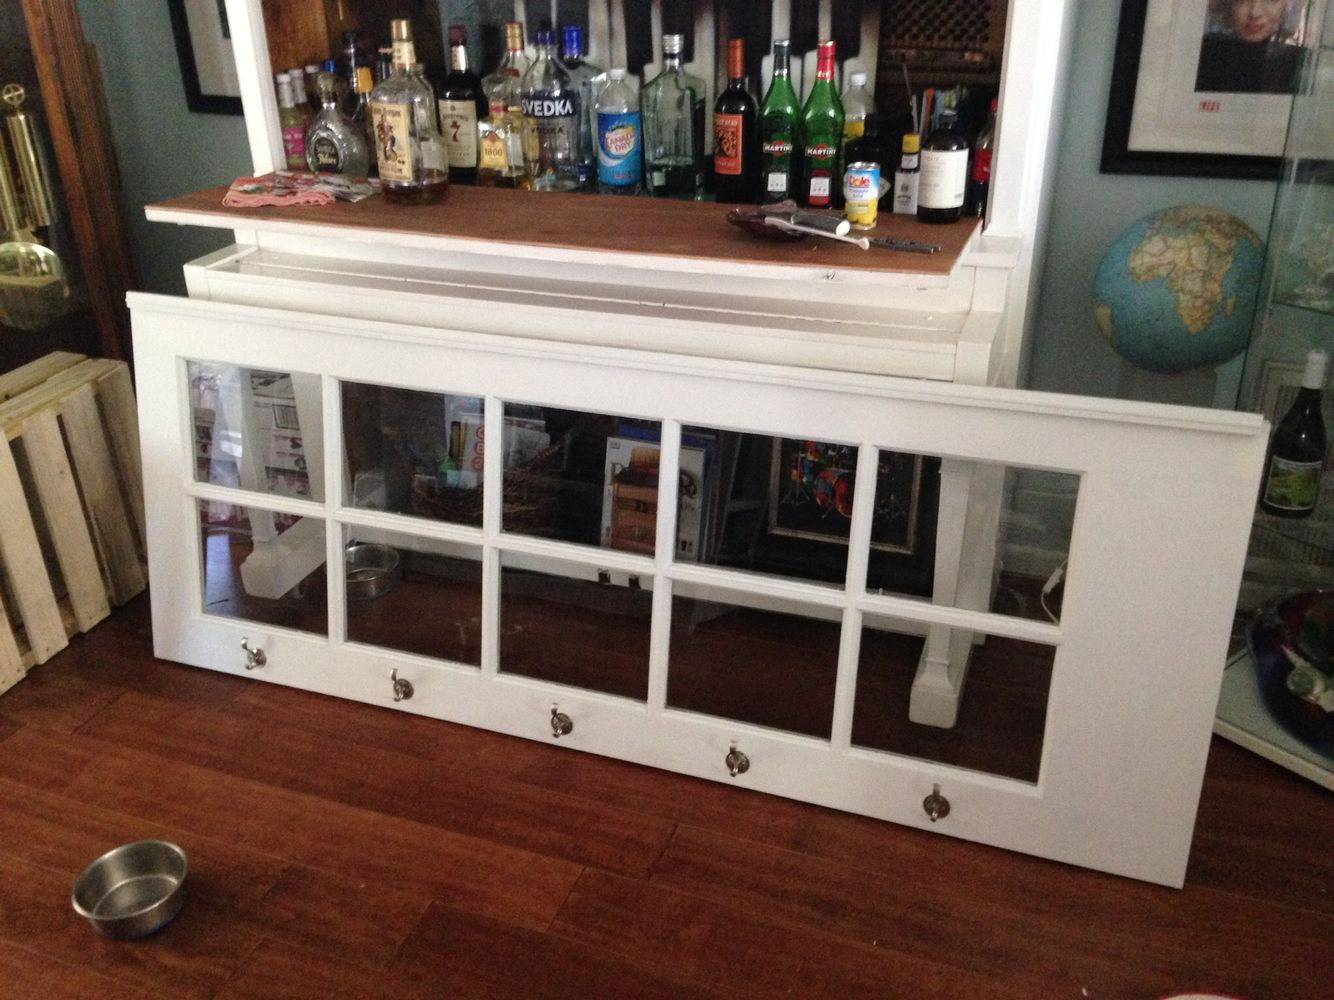 Old Glass Pane Door Made Into A Picture Frame With Hooks For Keys. Piano Bar